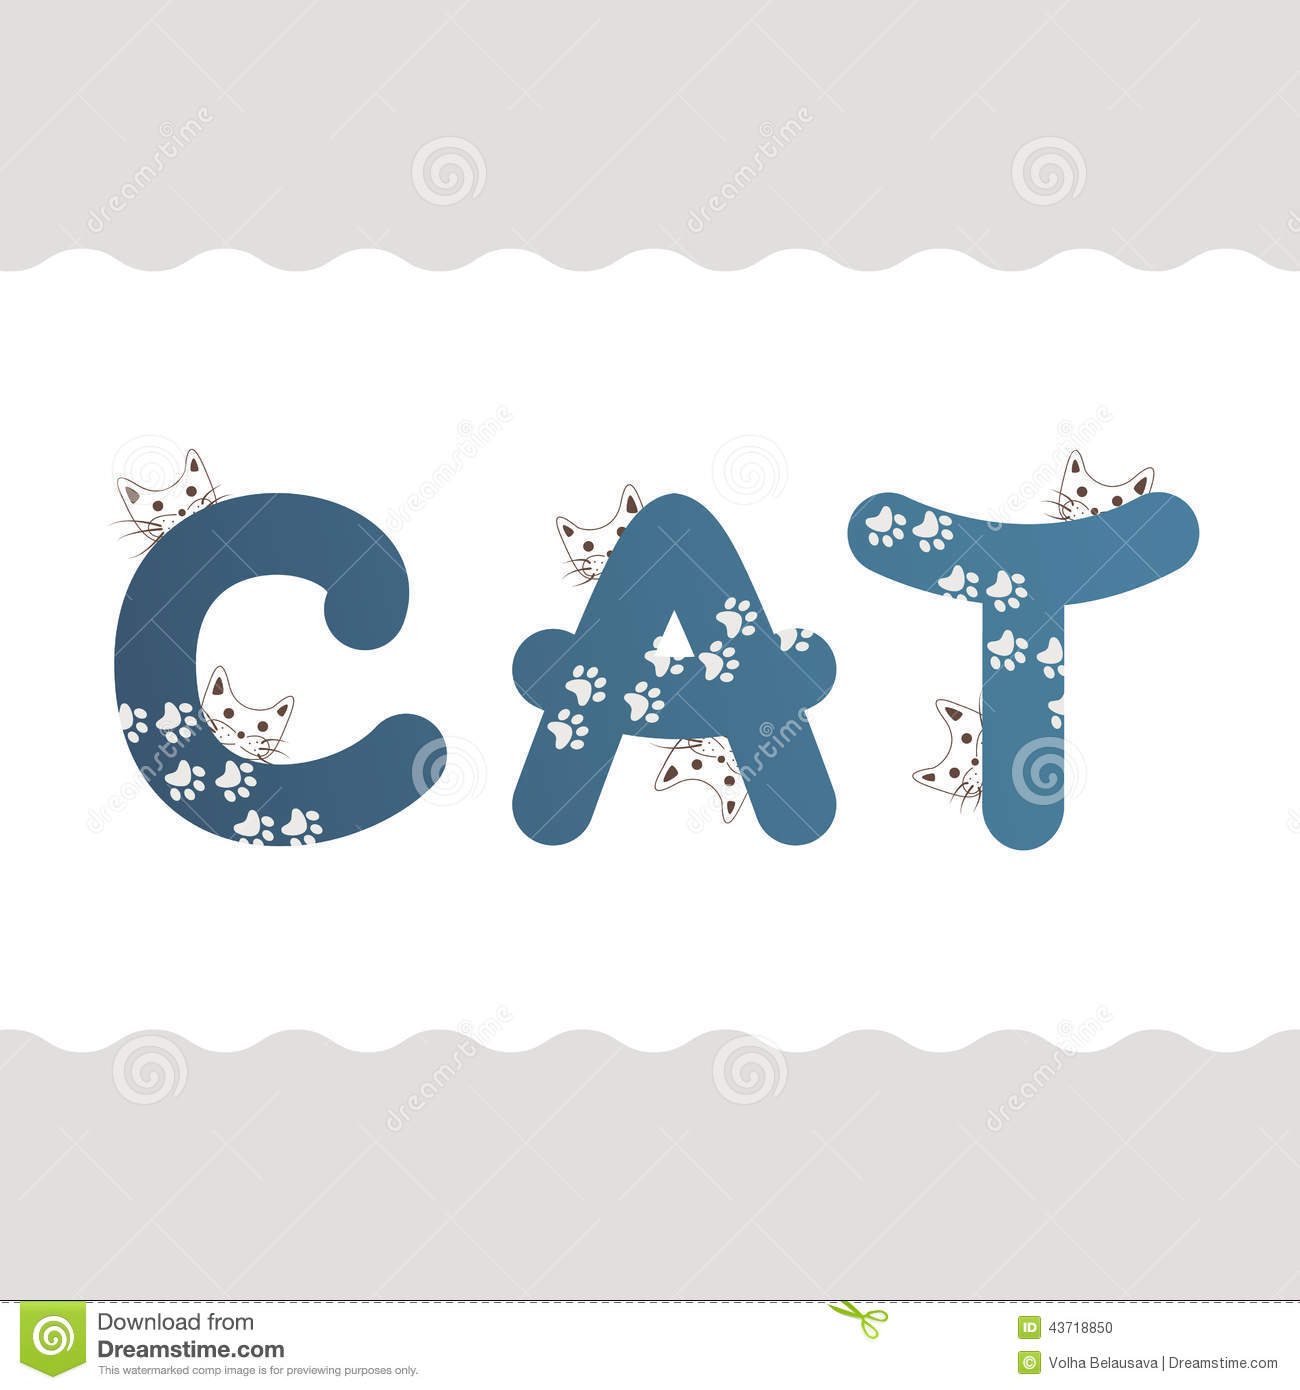 Free Clipart For All Letters With Cats